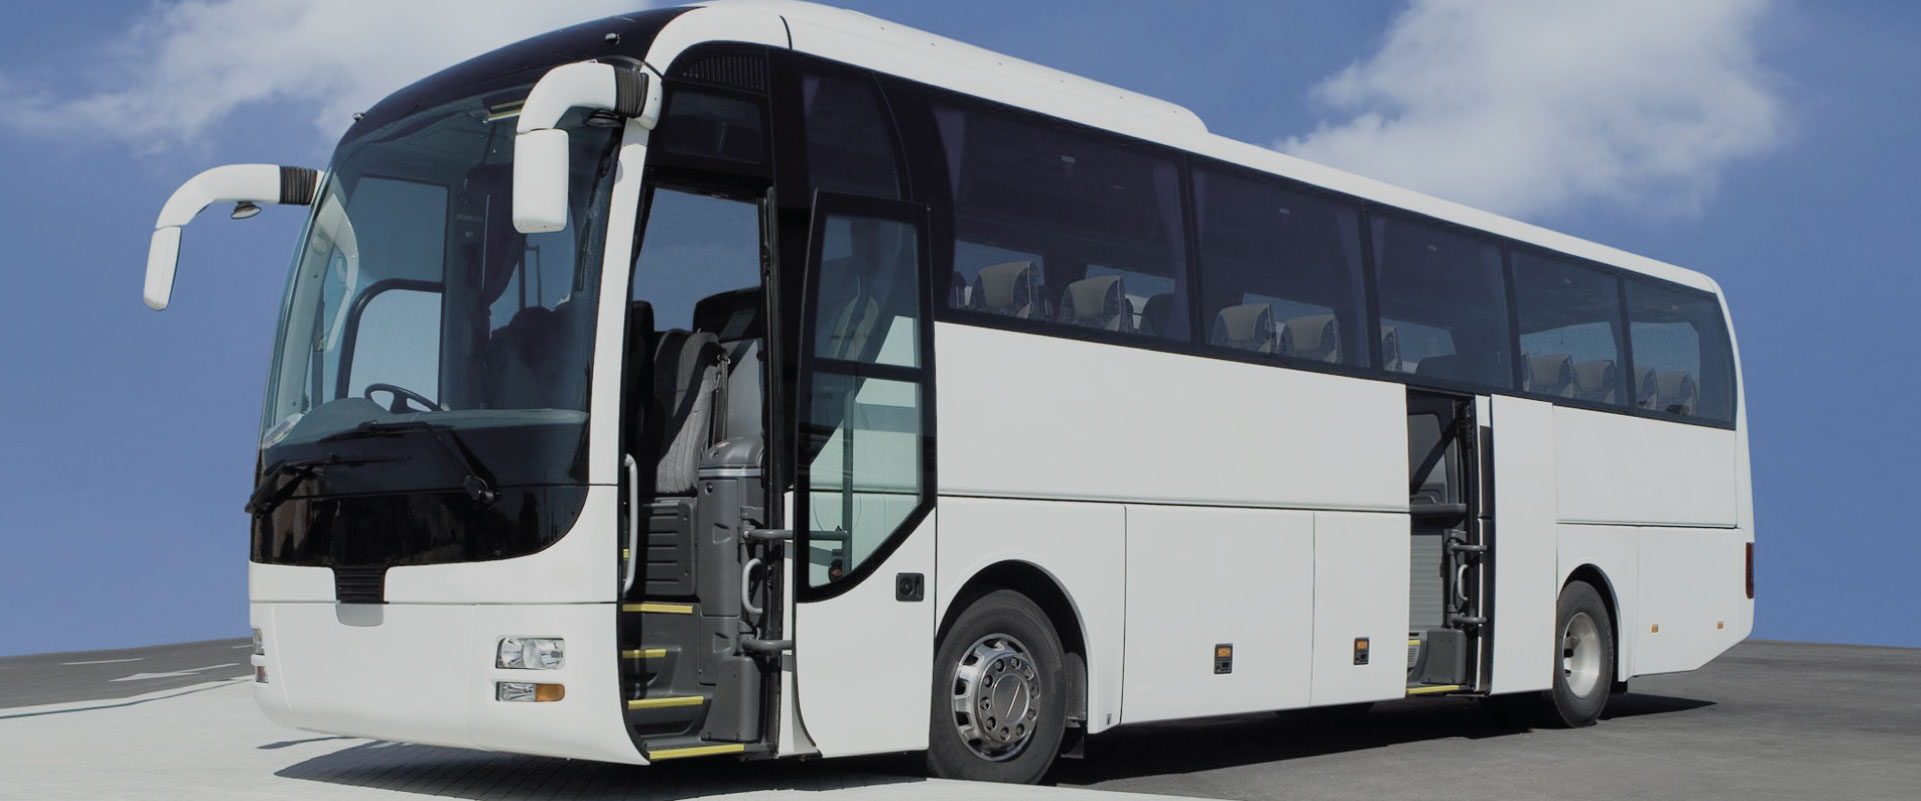 Coaches & Mini buses for School trips